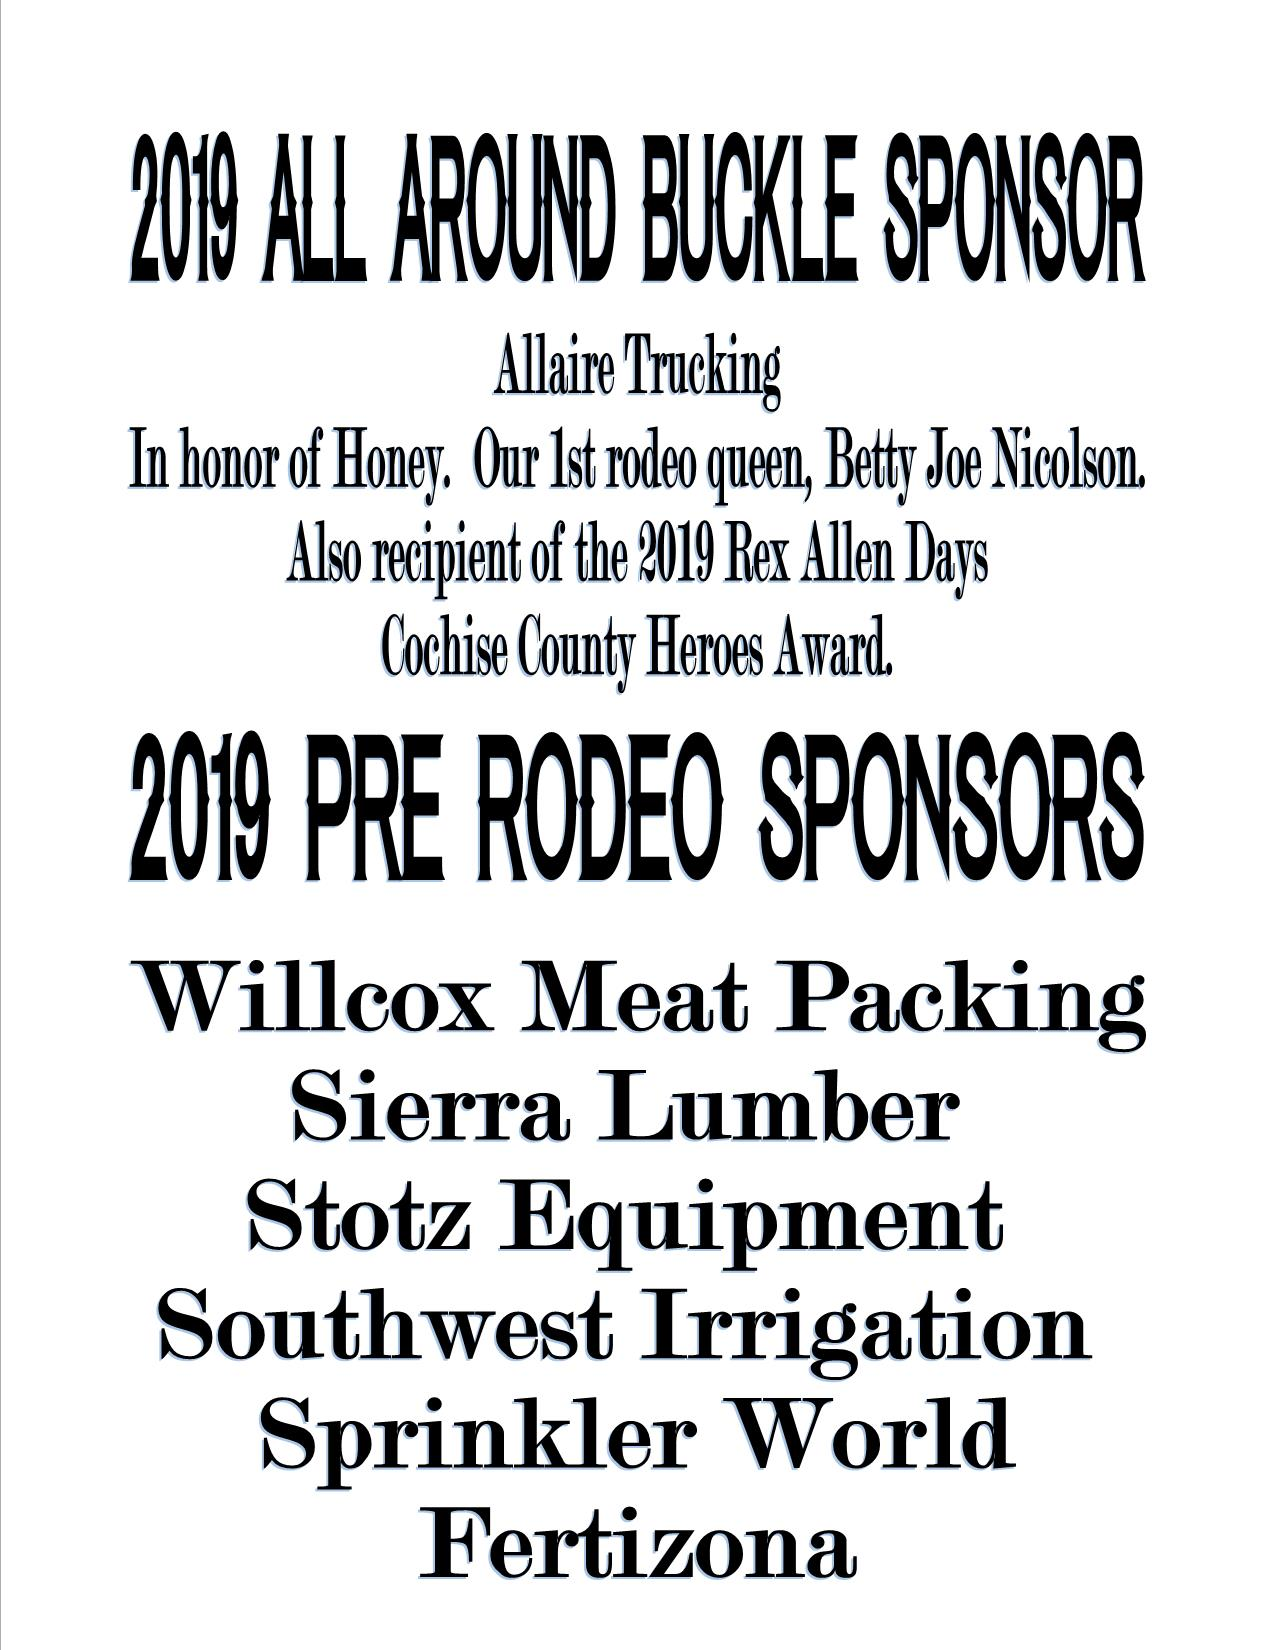 2019 All around and Pre Rodeo